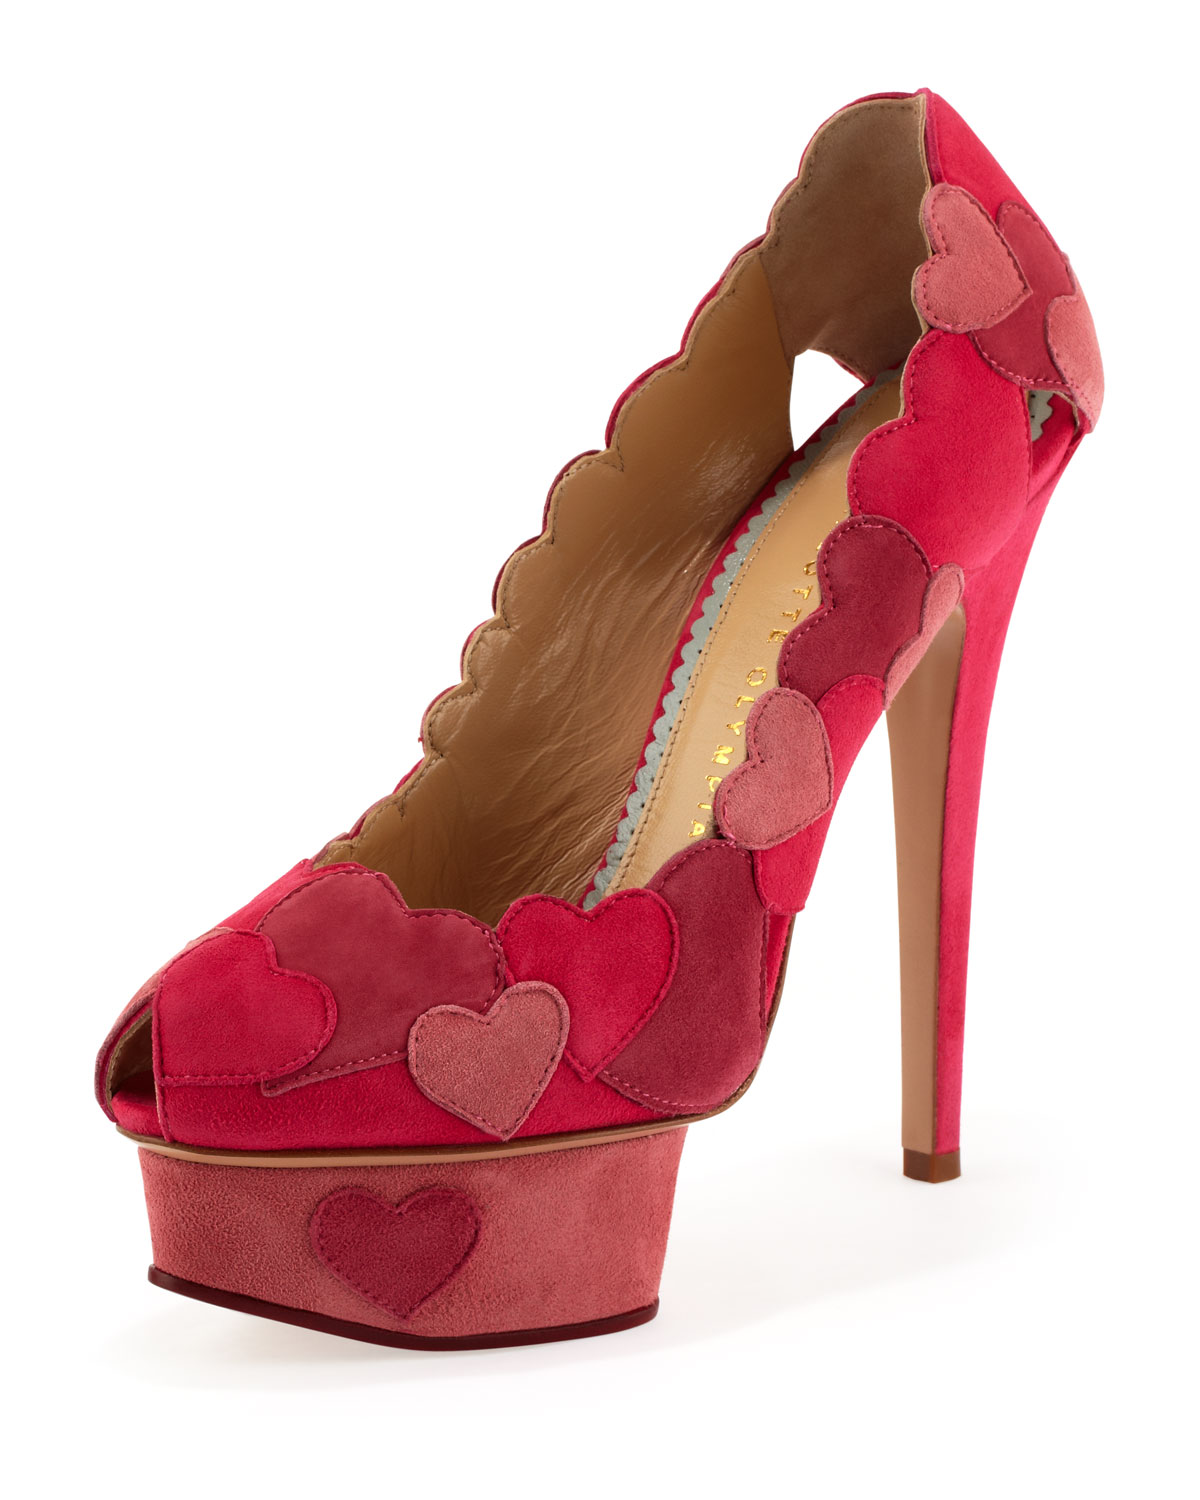 Love Me Heart-Applique Pump, Fuchsia (Pink), Size: 39.5B/9.5B - Charlotte Olympia